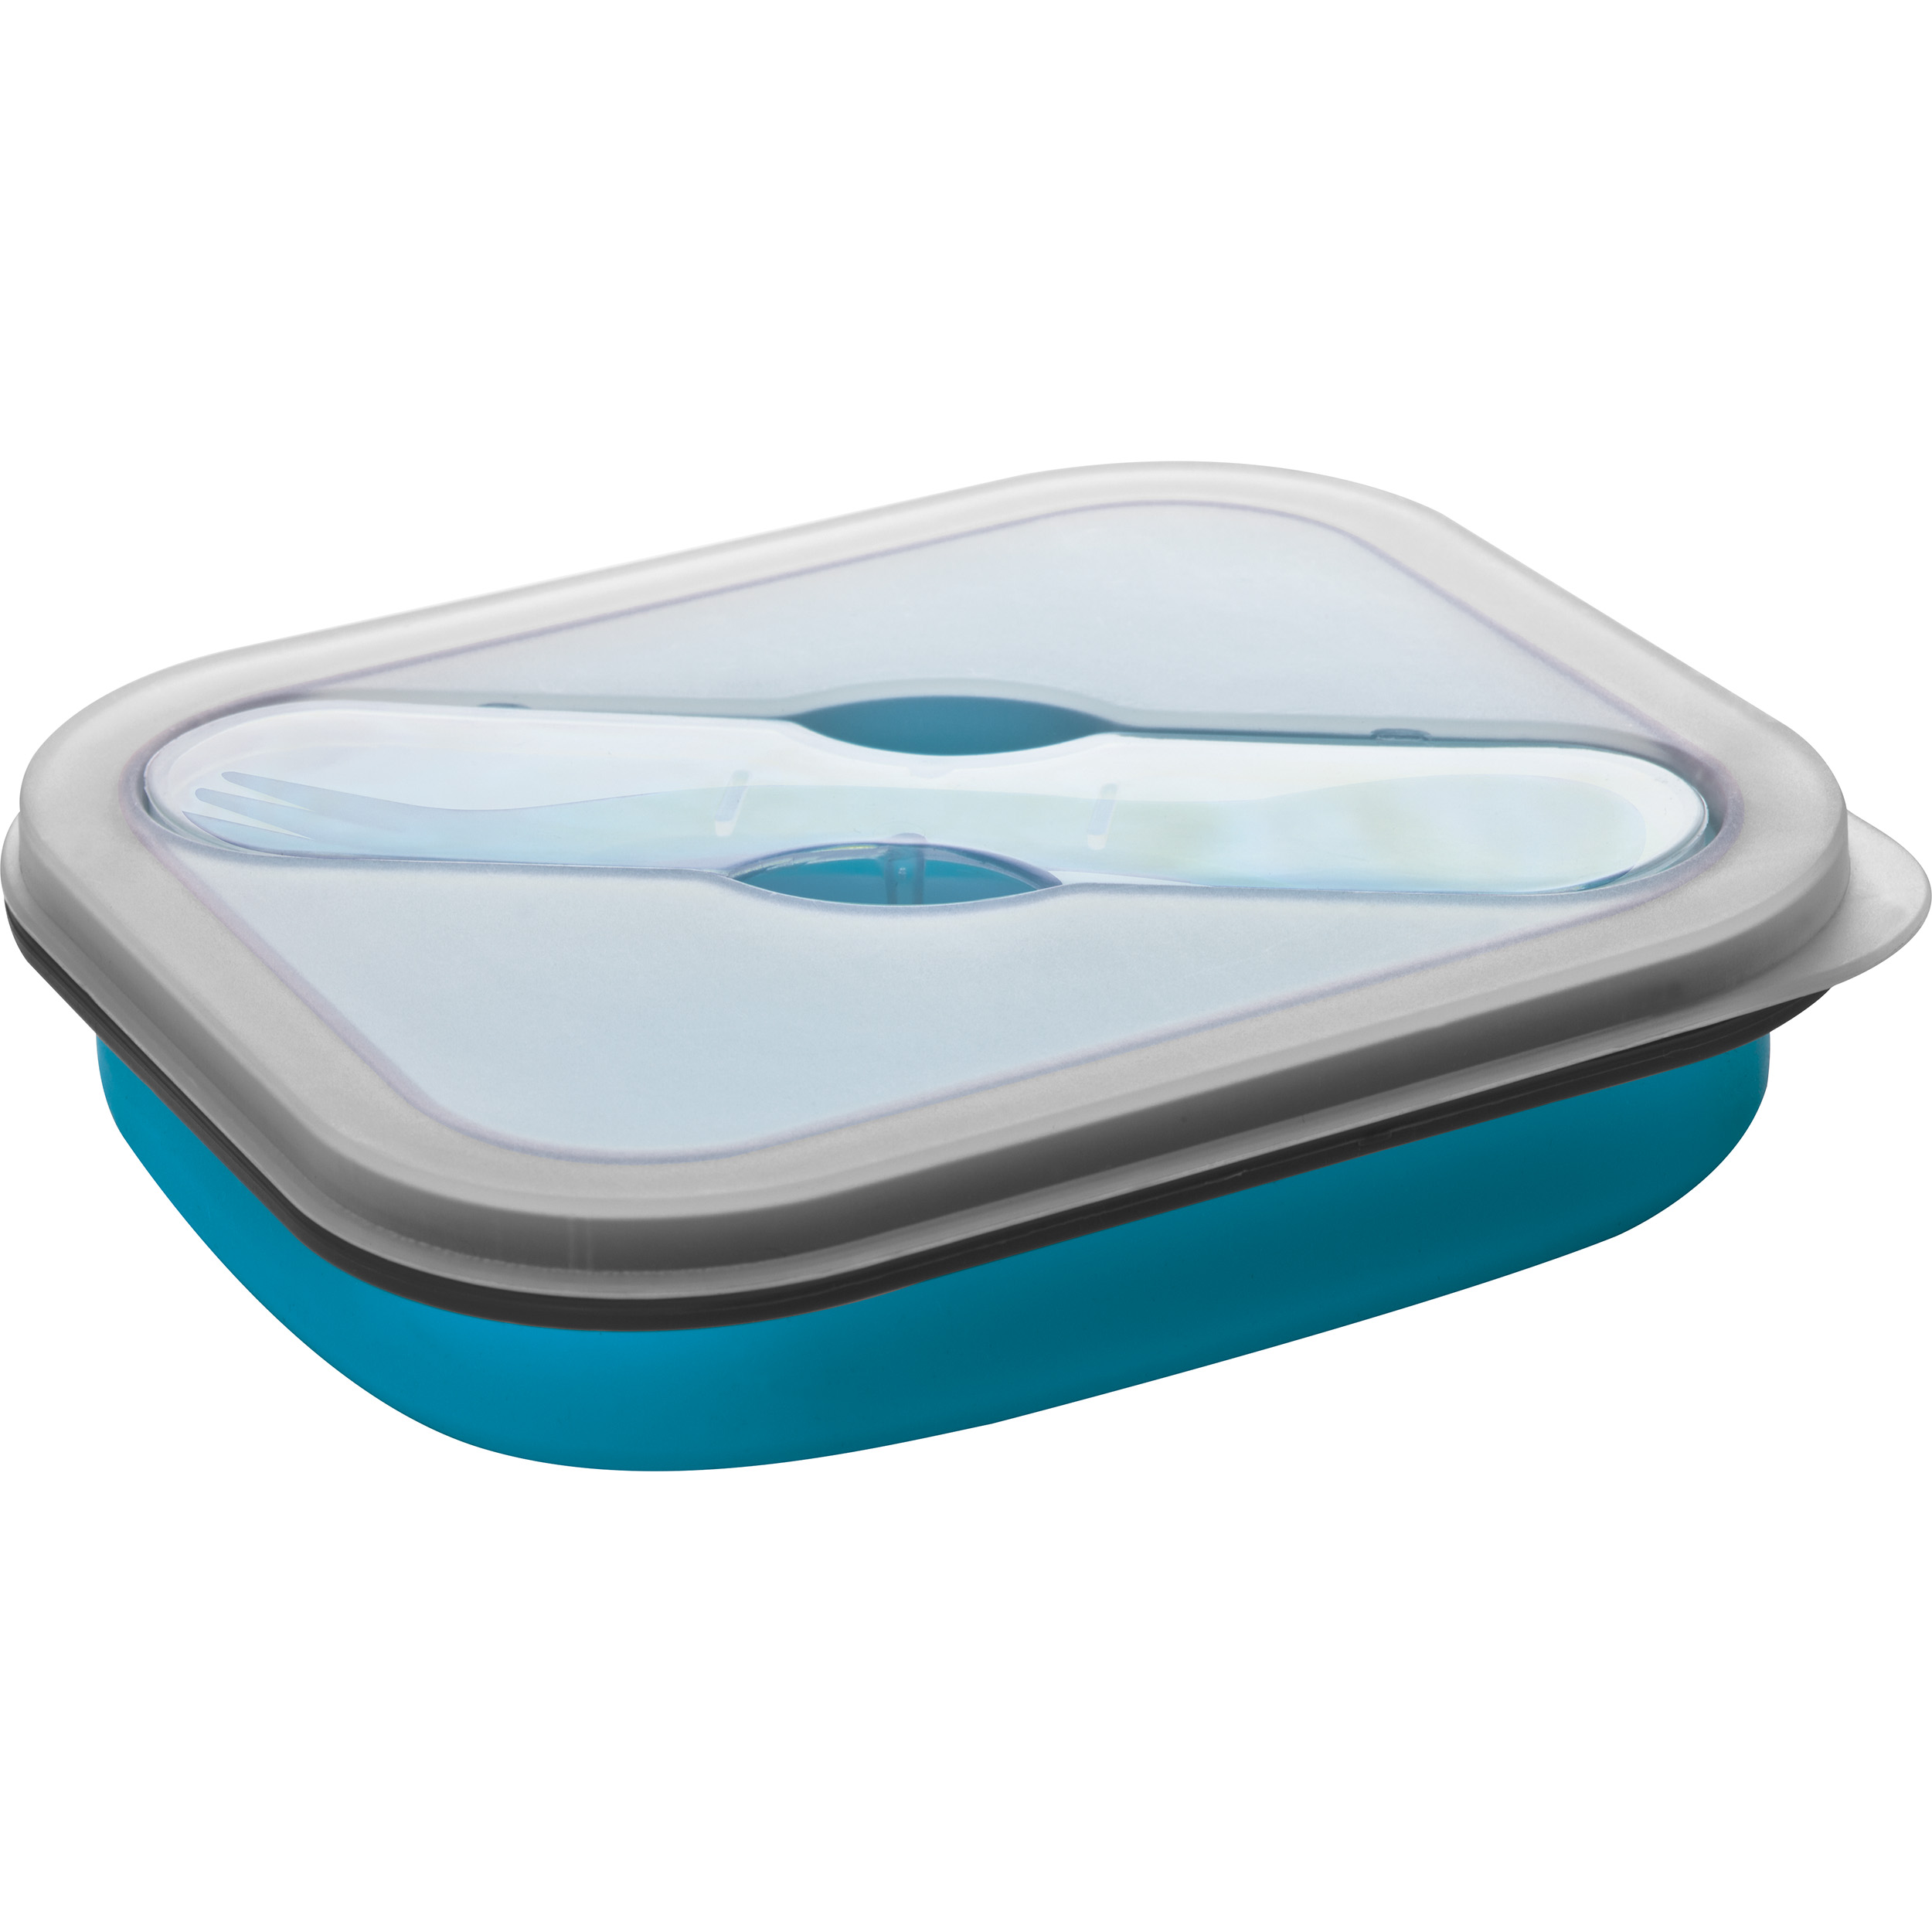 Foldable silicon bowl - small